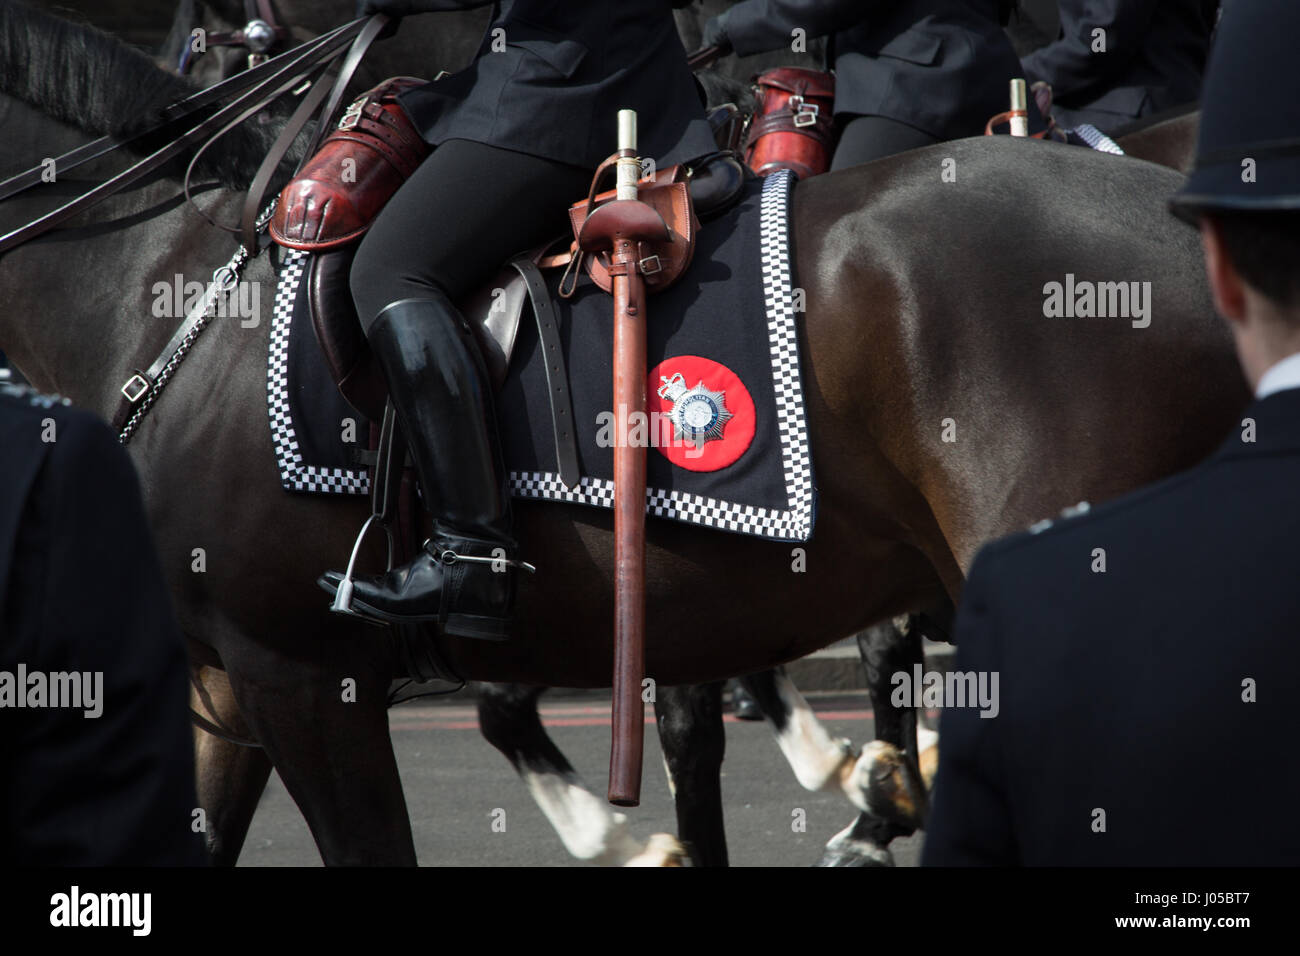 London, UK. 10th Apr, 2017. A police officer on horse back as the the coffin of PC Keith Palmer makes its way down - Stock Image